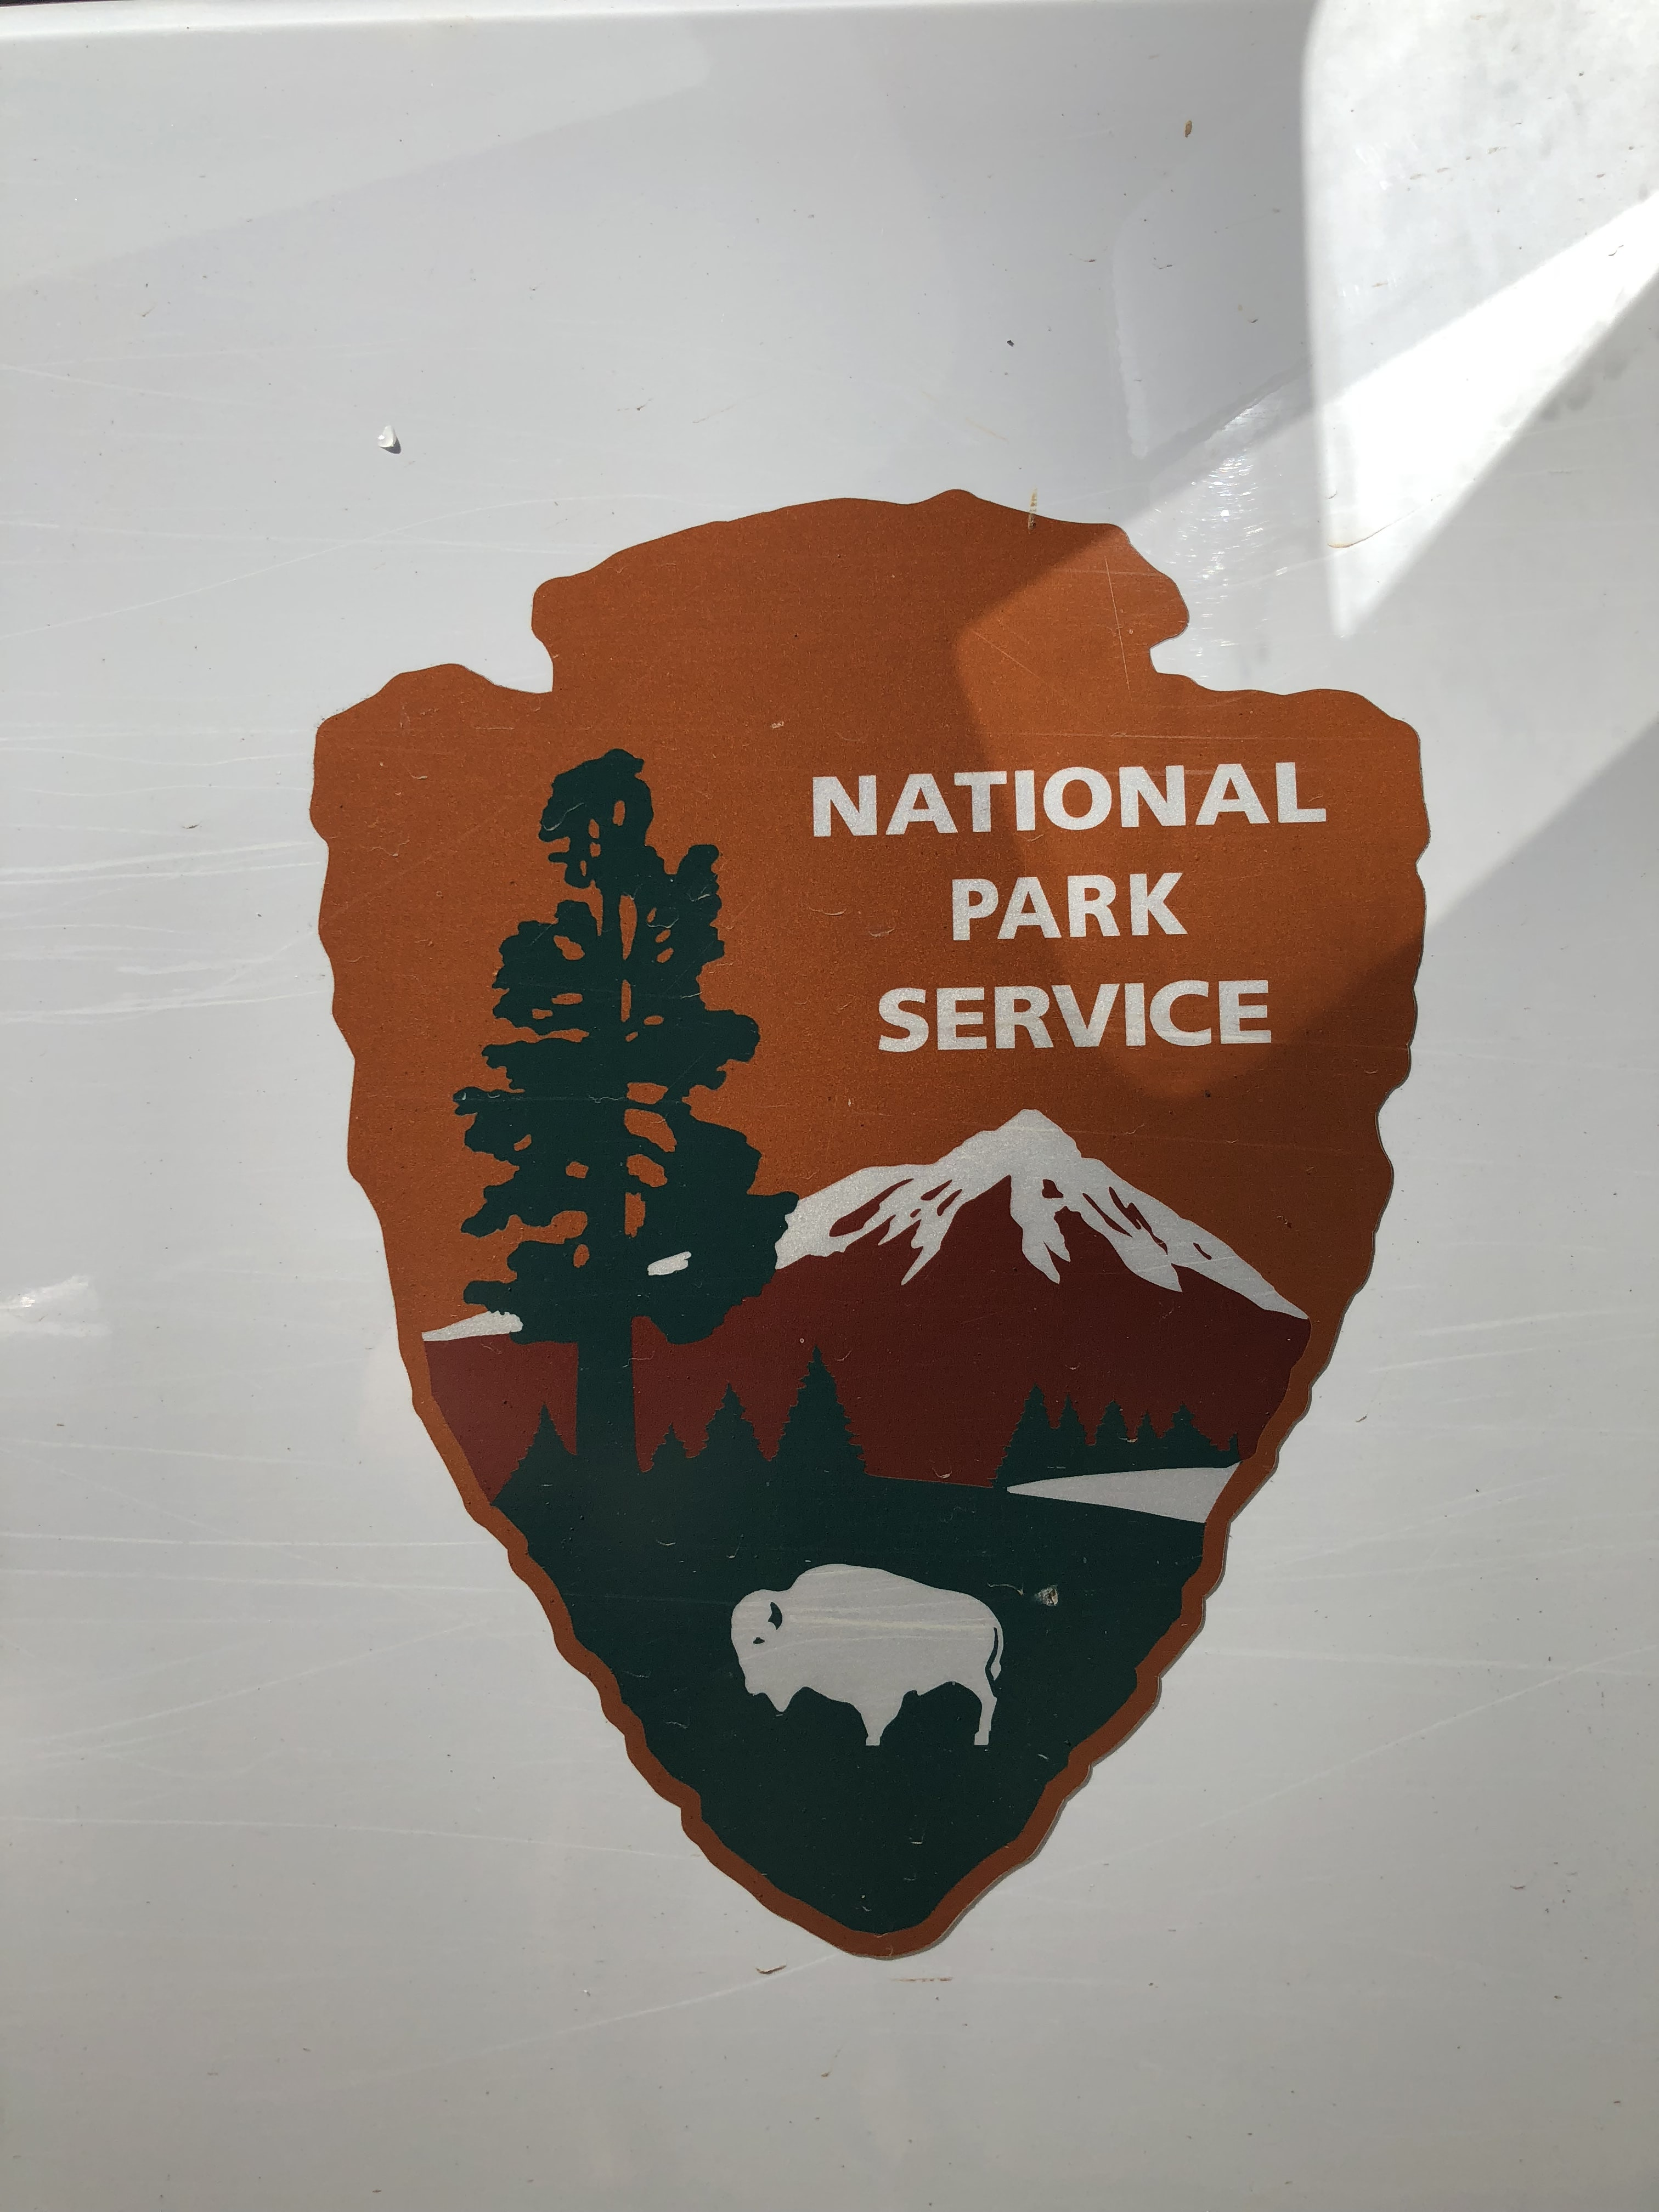 close-up of National Park Service logo